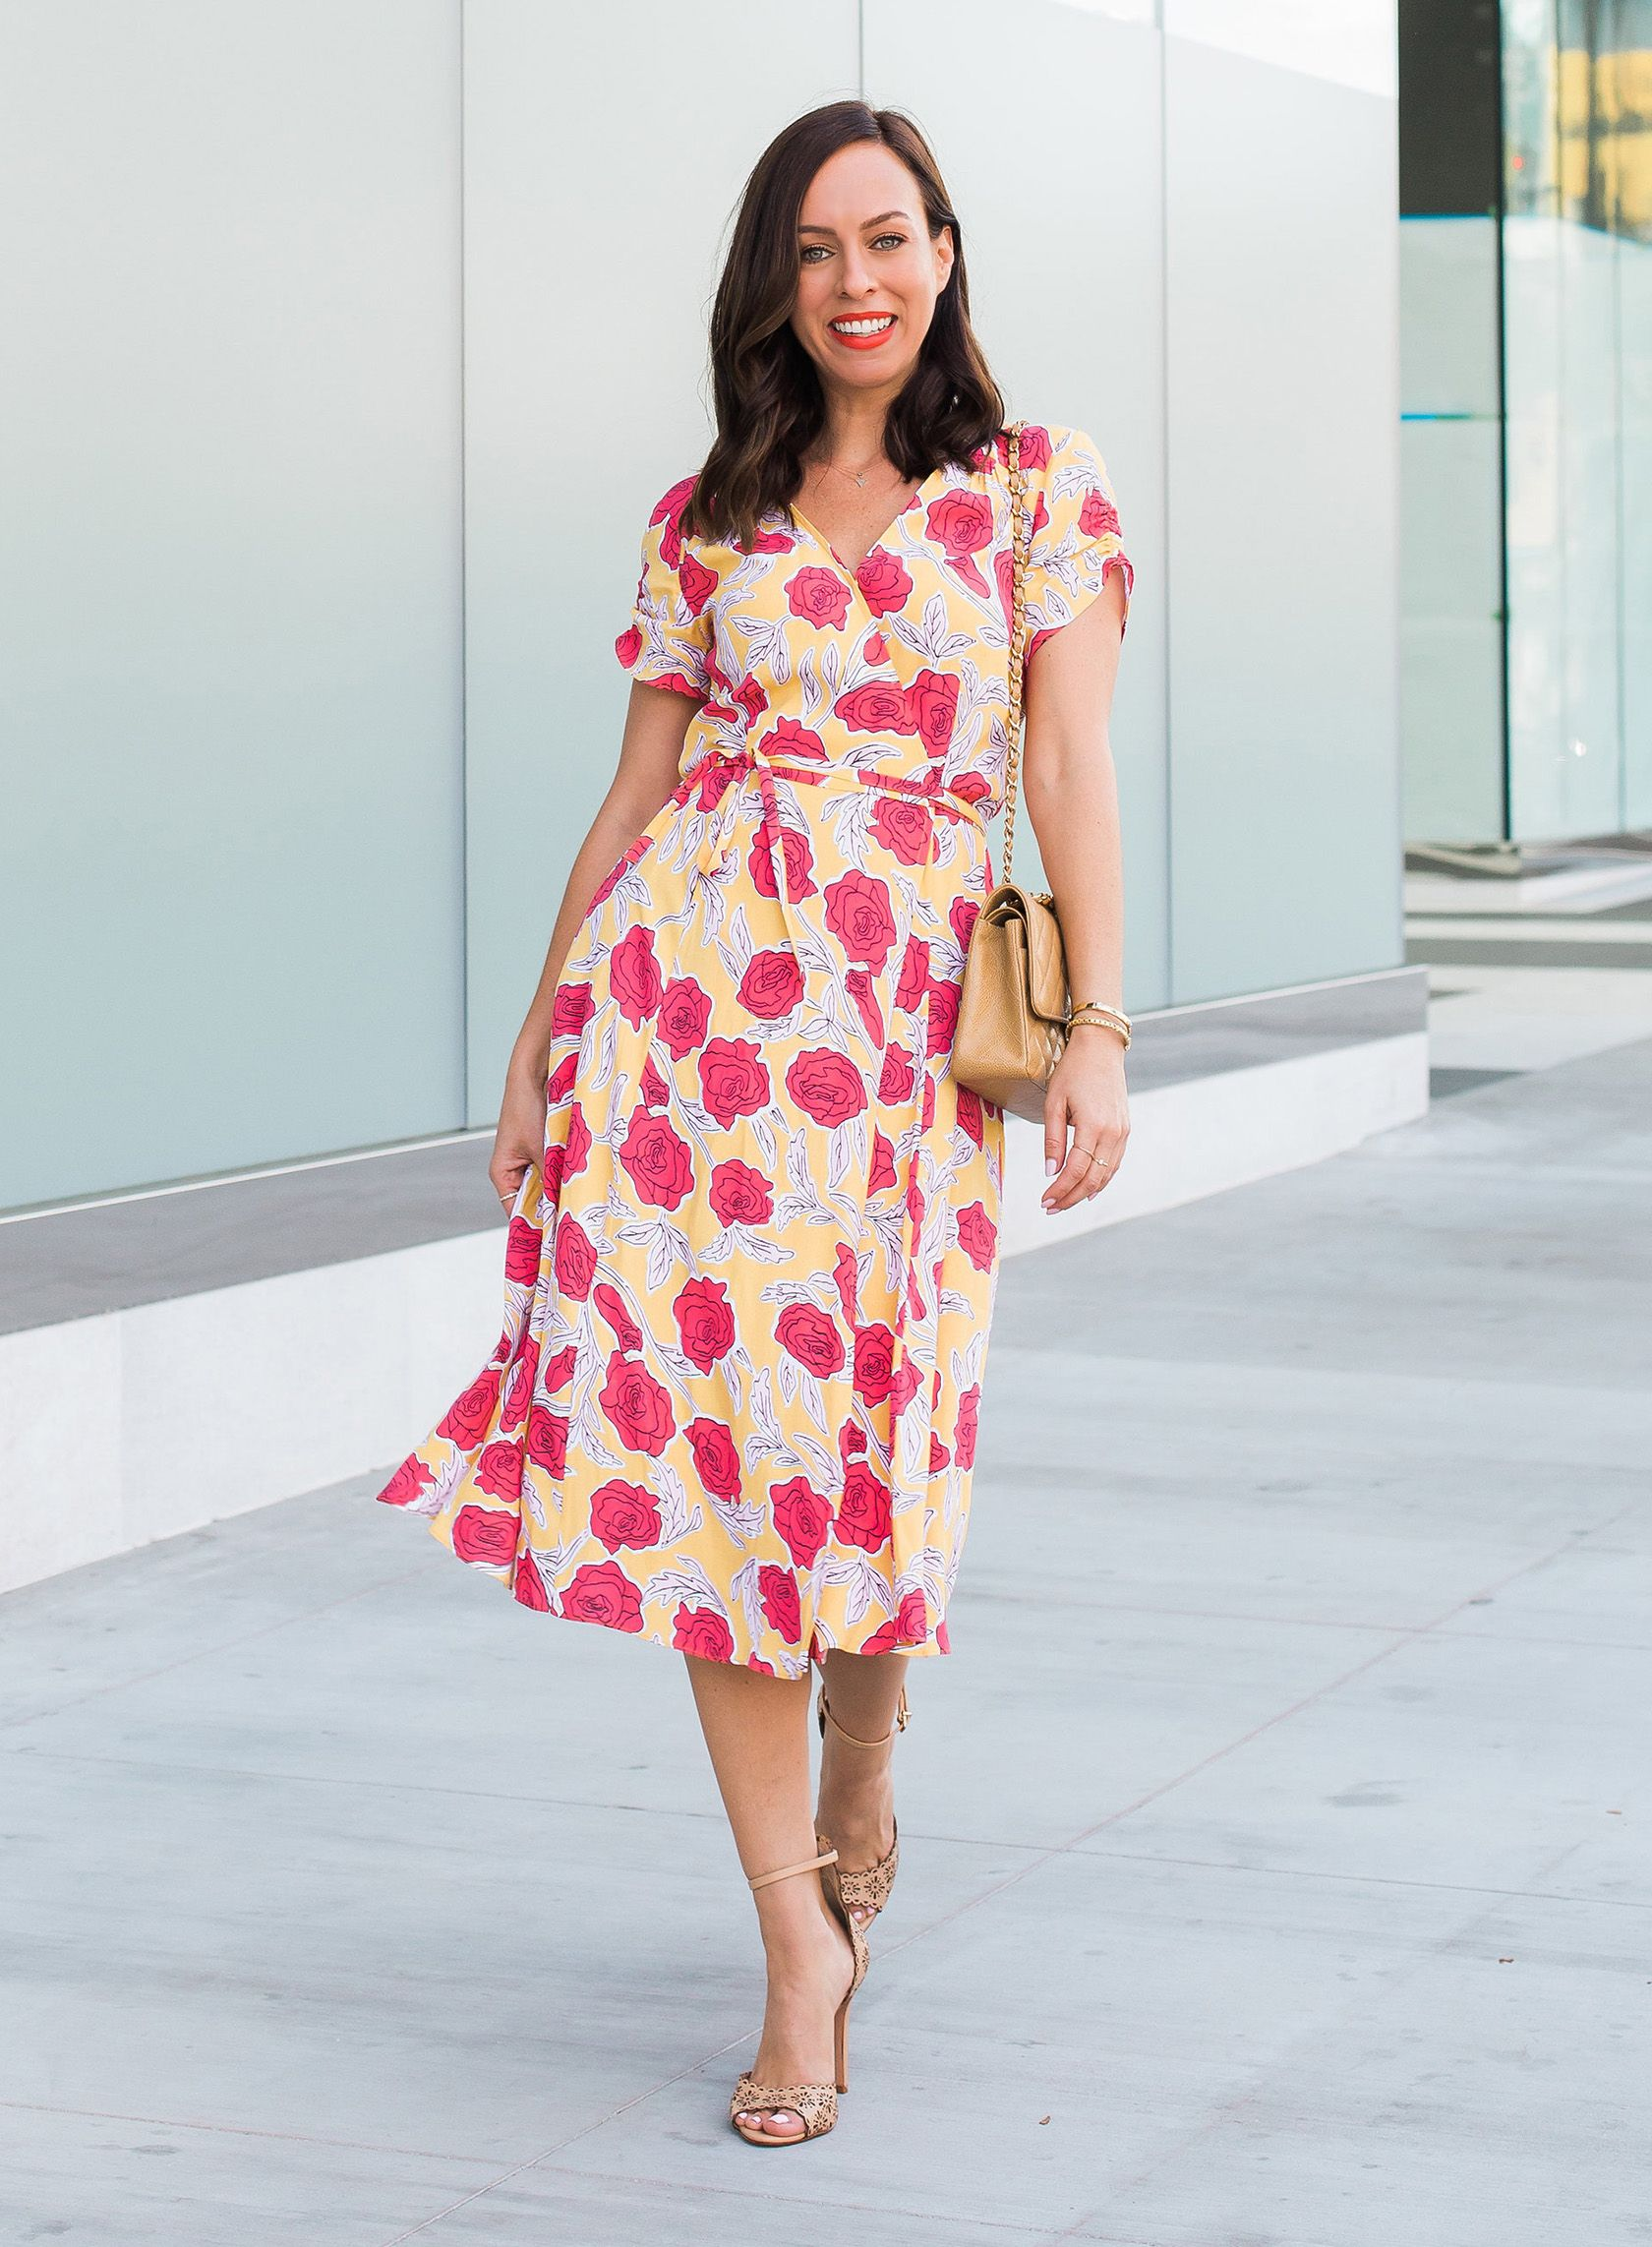 6e3f78dbaa16 Sydne Style reviews the best wrap dresses for summer office outfit ideas   florals  dresses  wrapdresses  summeroutfits